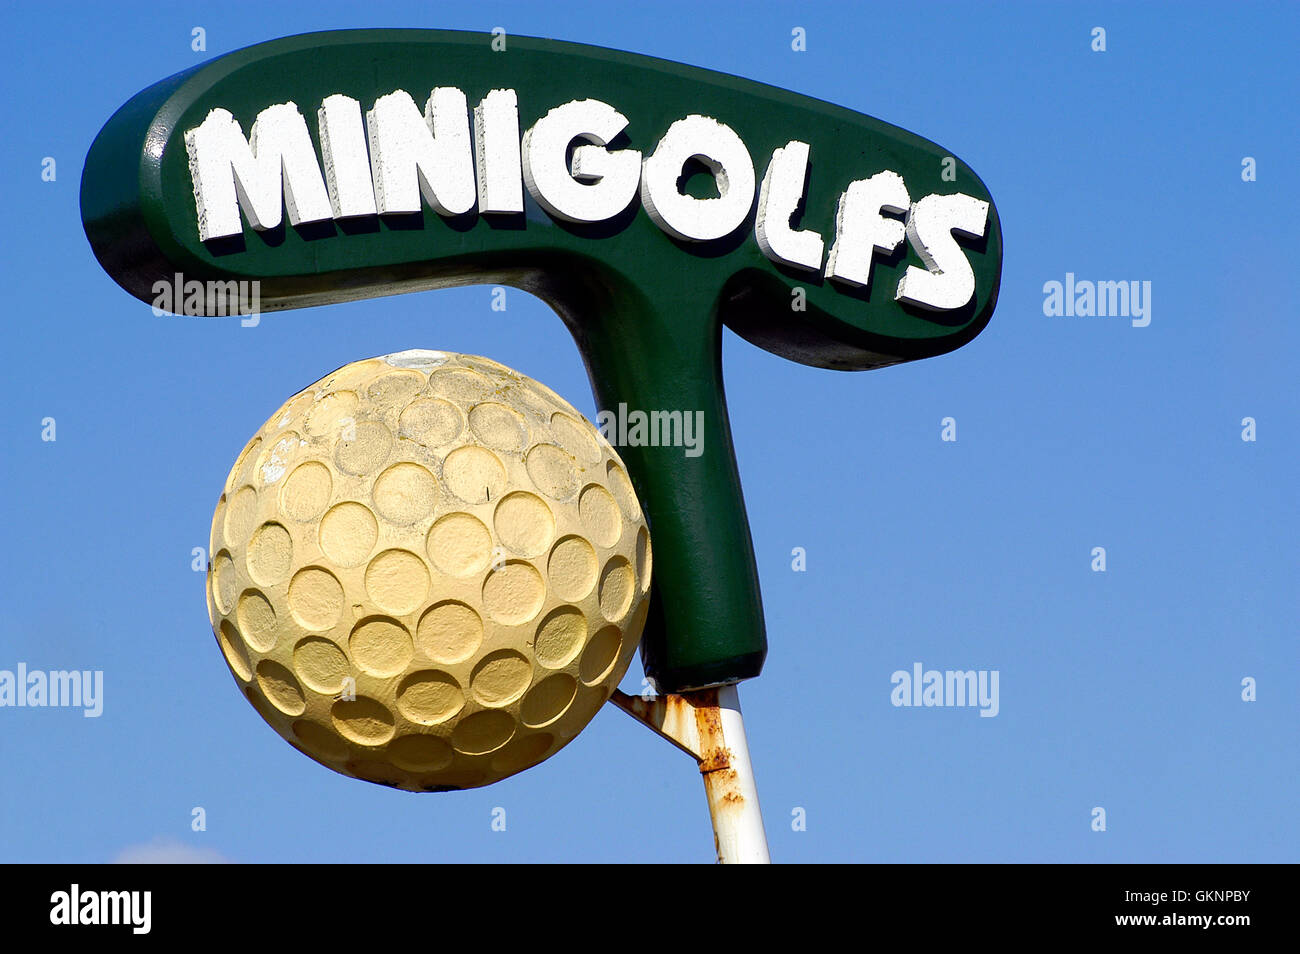 minigolf in Touquet in the north of France - Stock Image